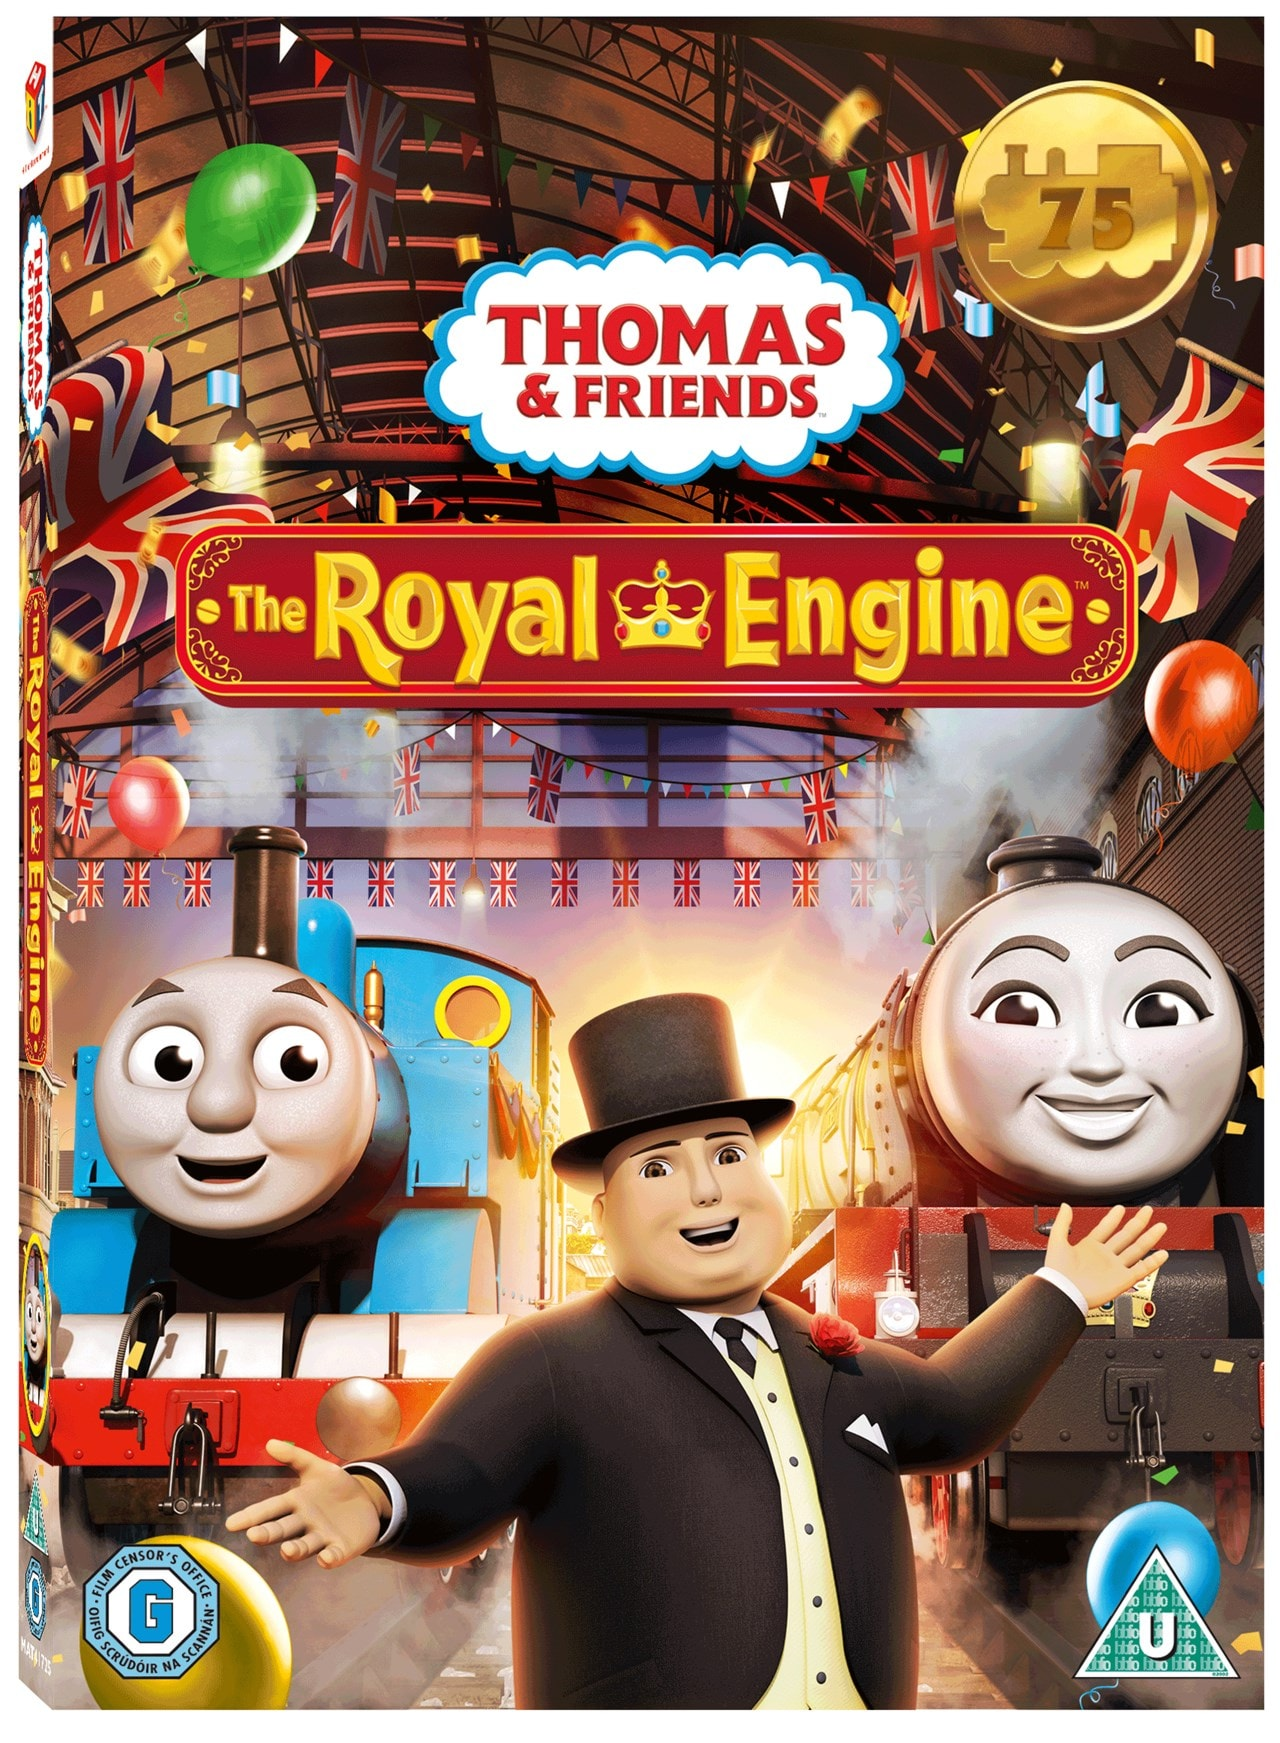 Thomas & Friends: The Royal Engine - 2